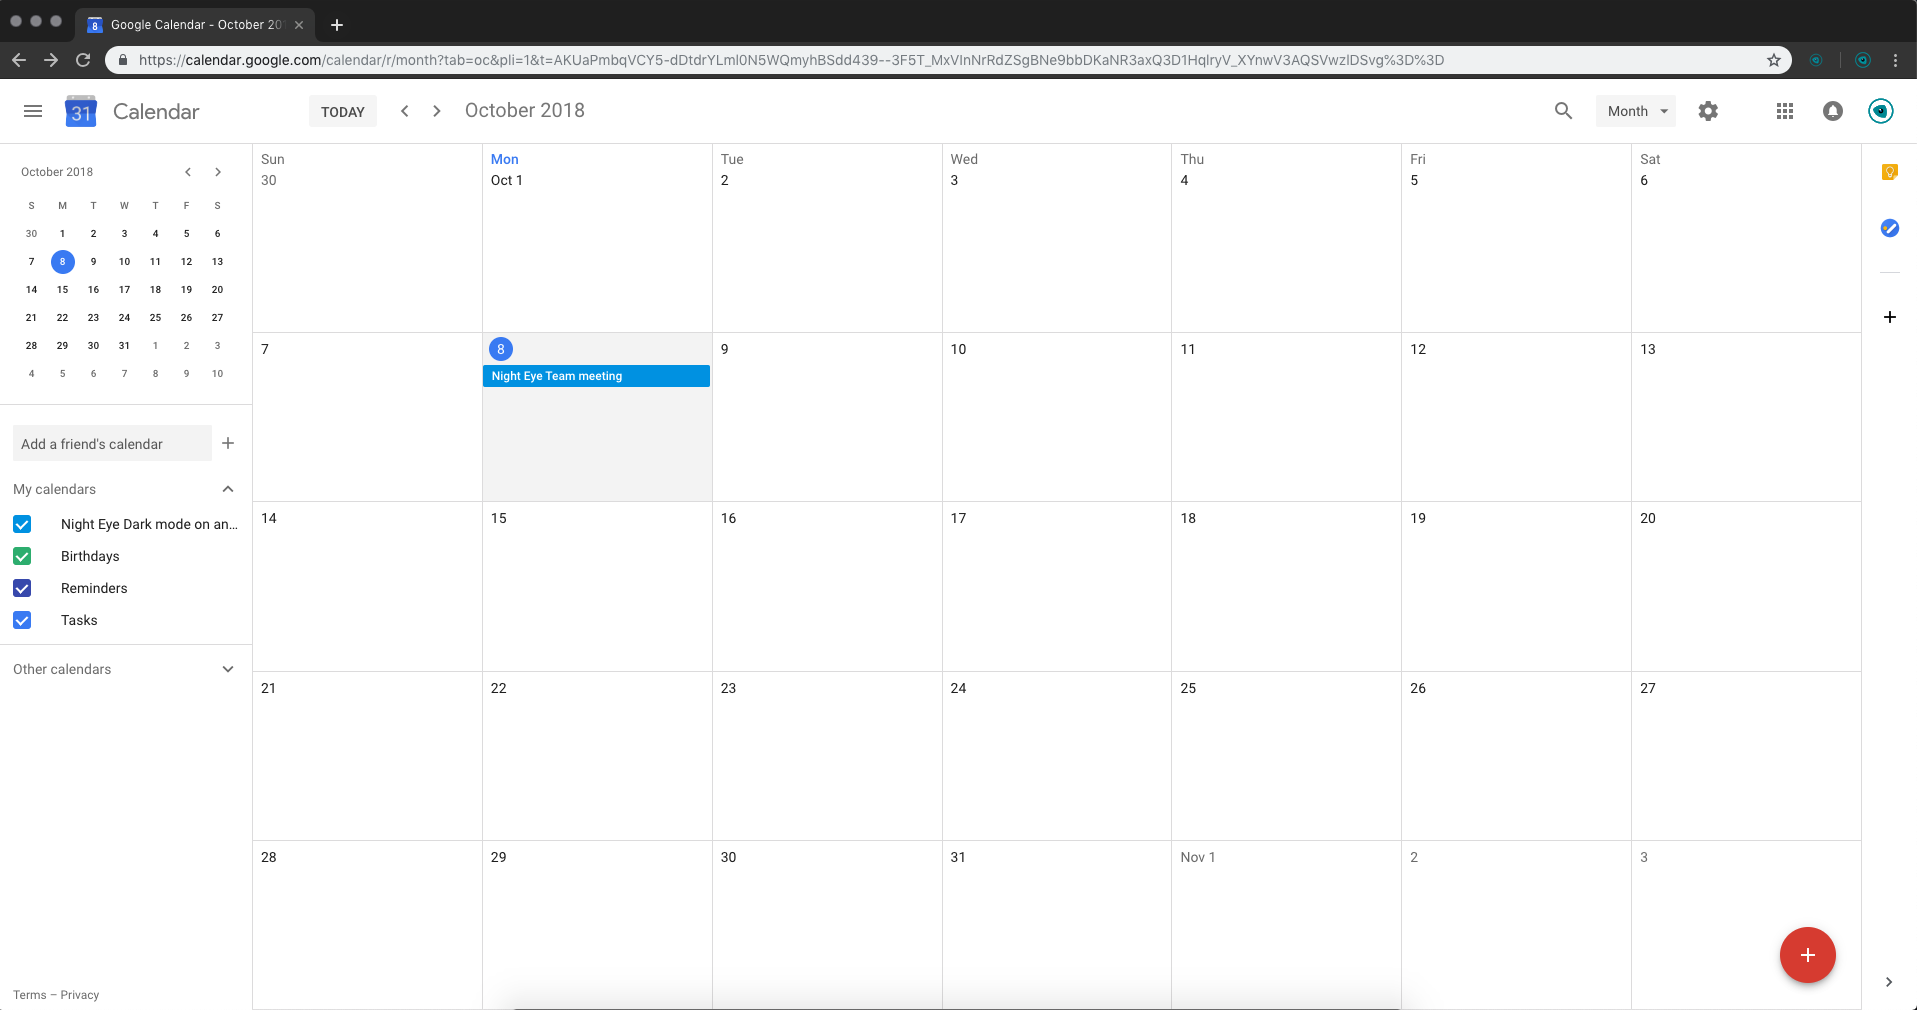 Google-calendar-normla-mode-night-eye